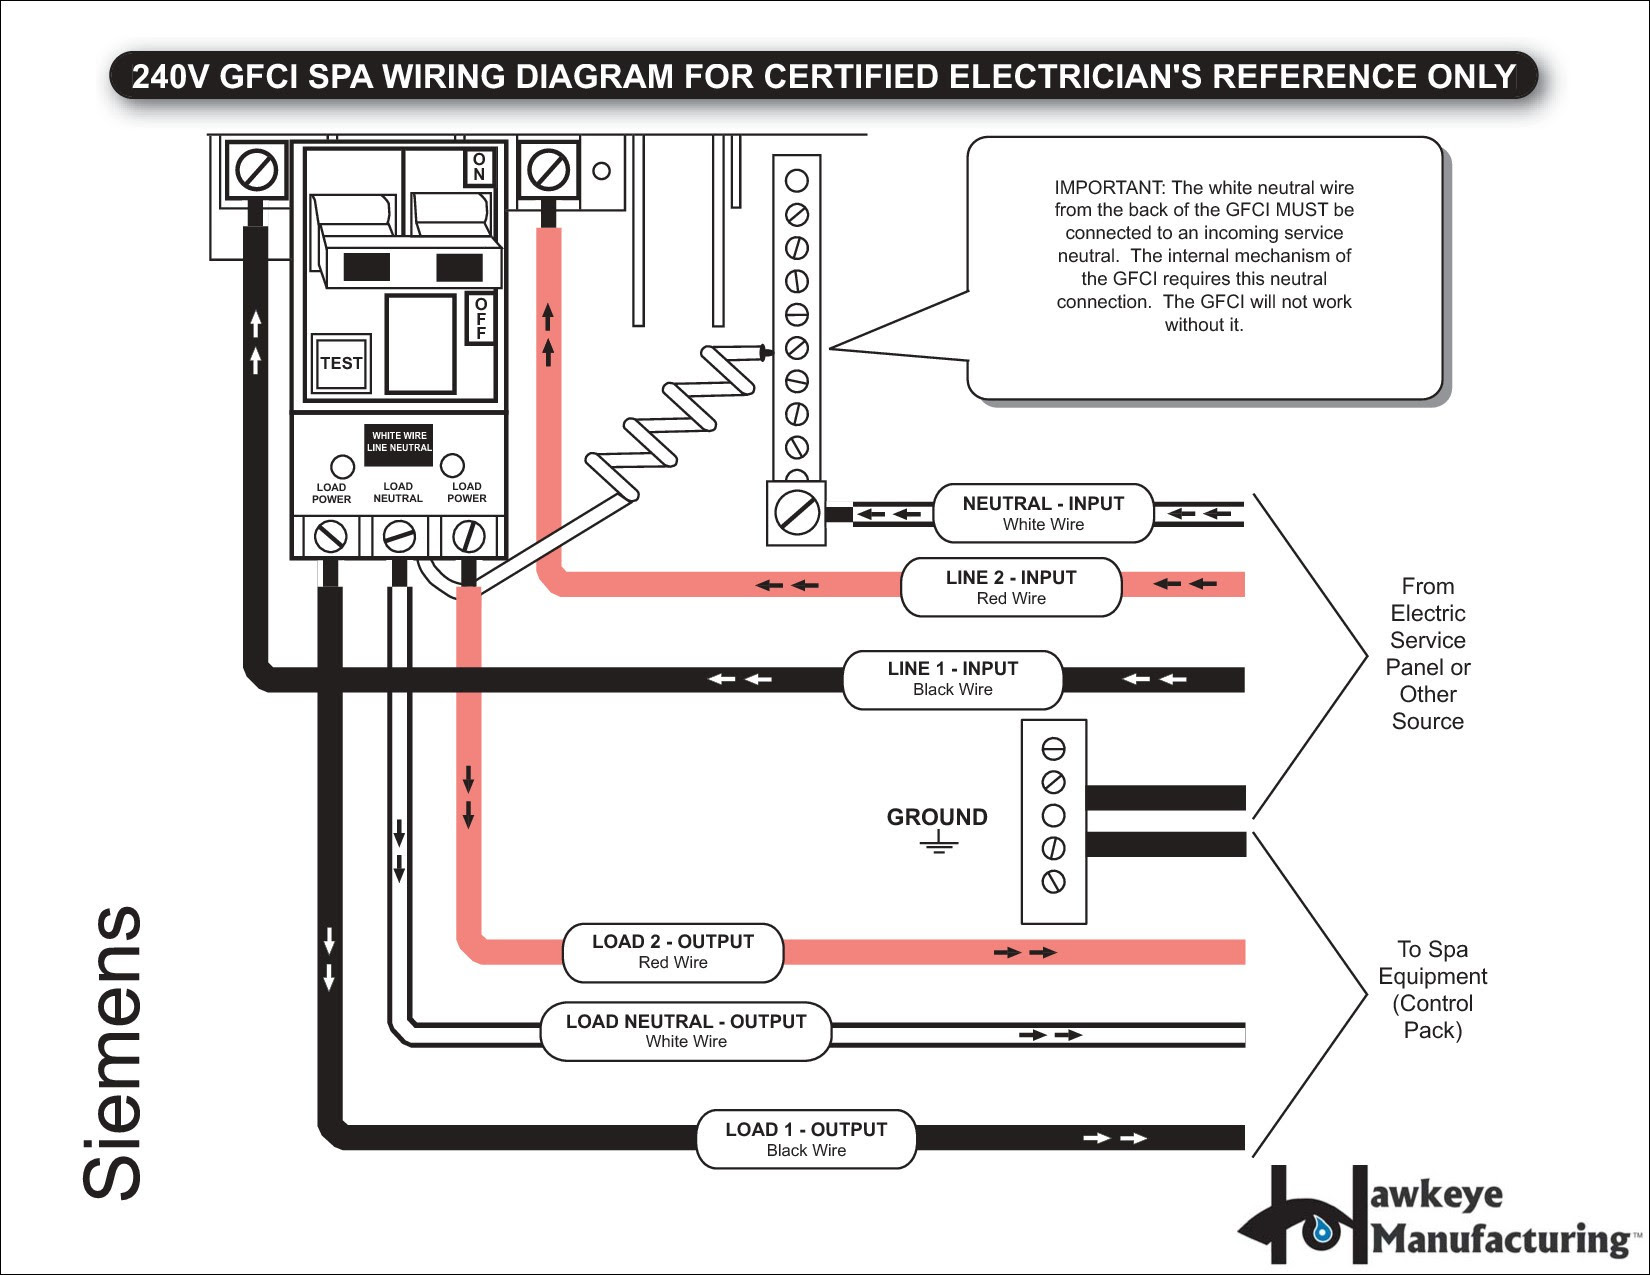 50 Amp Rv Service Wiring Diagram from lh6.googleusercontent.com